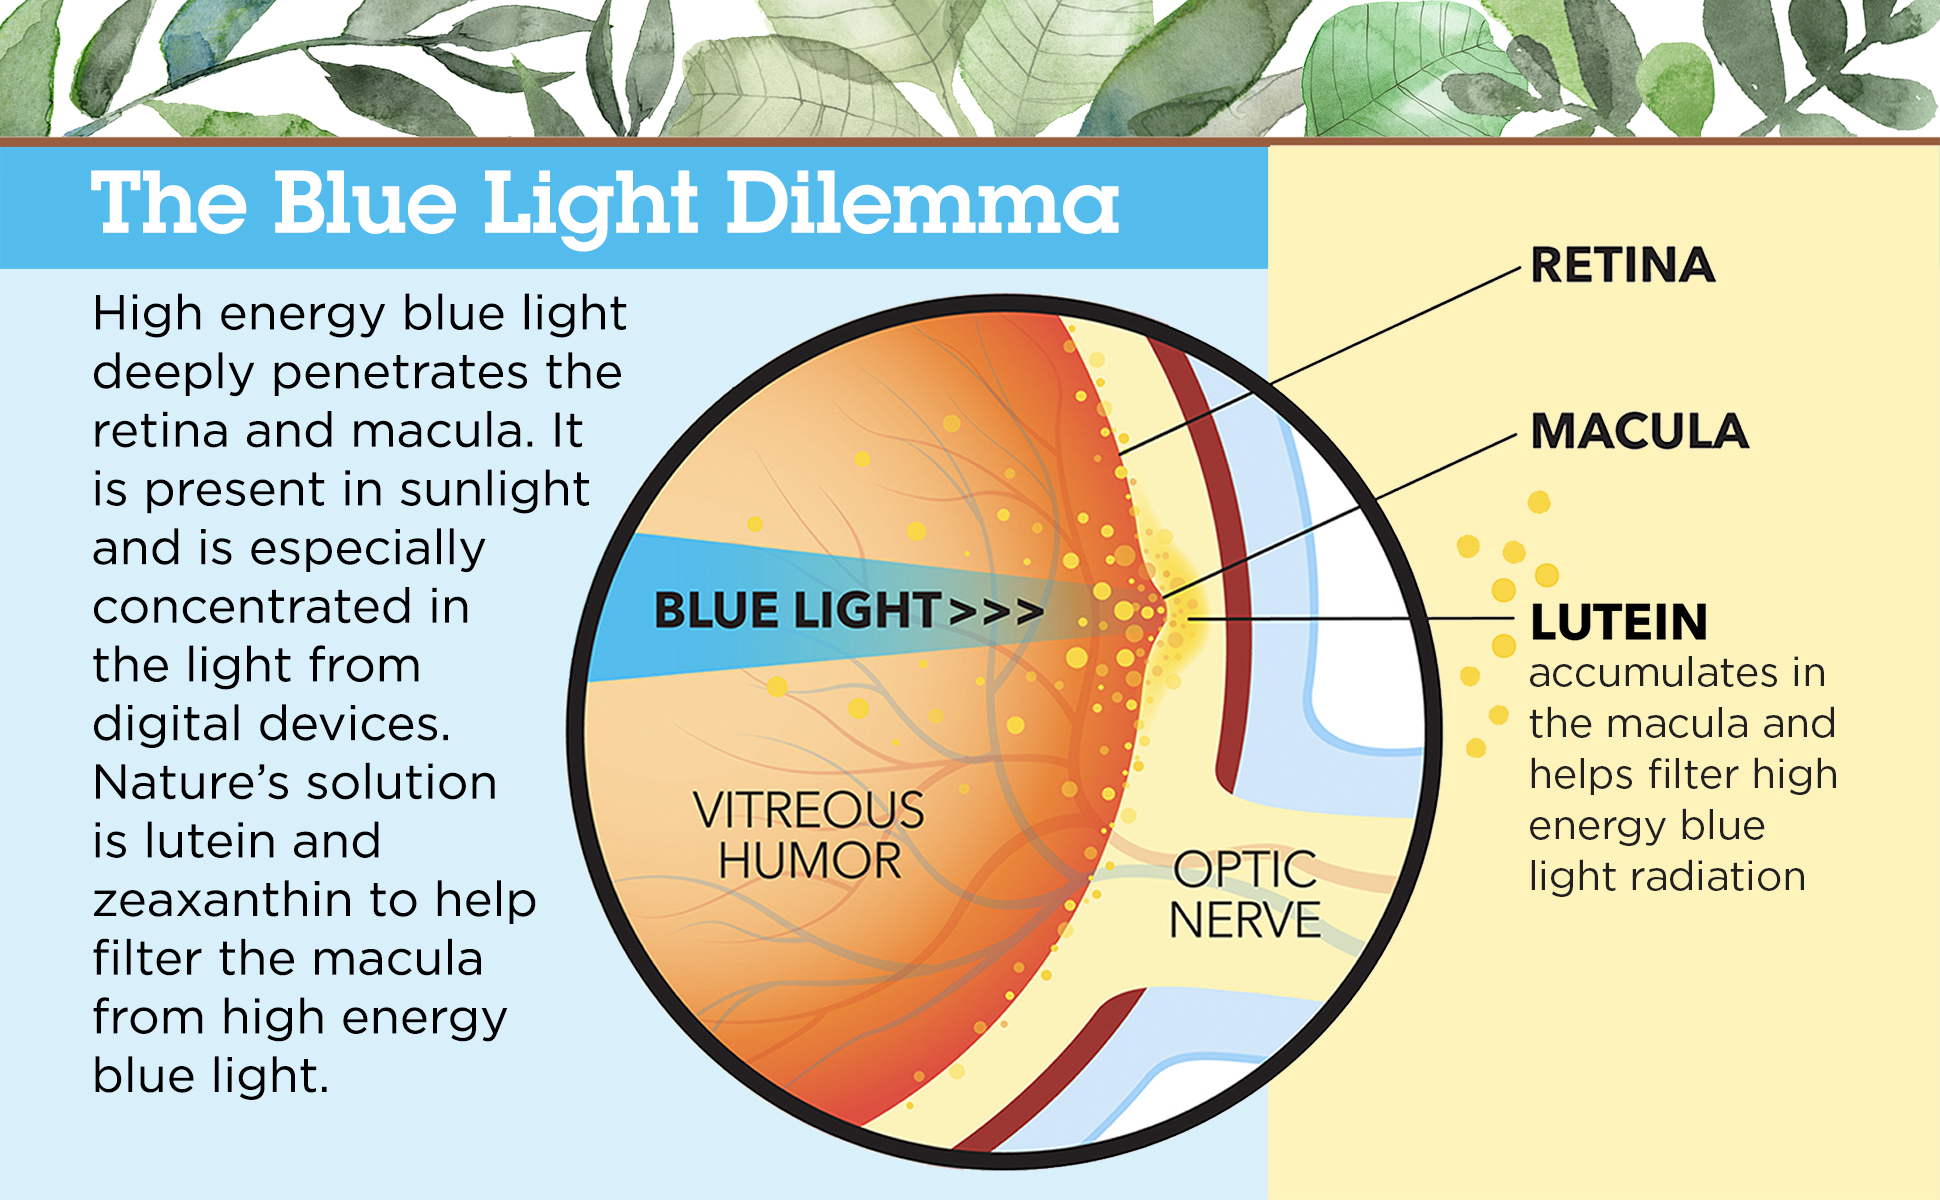 High energy blue light deeply penetrates the retina and macula.  It is present in sunlight and is especially concentrated in the light from digital devices. Nature's solution is lutein and zeaxanthin.